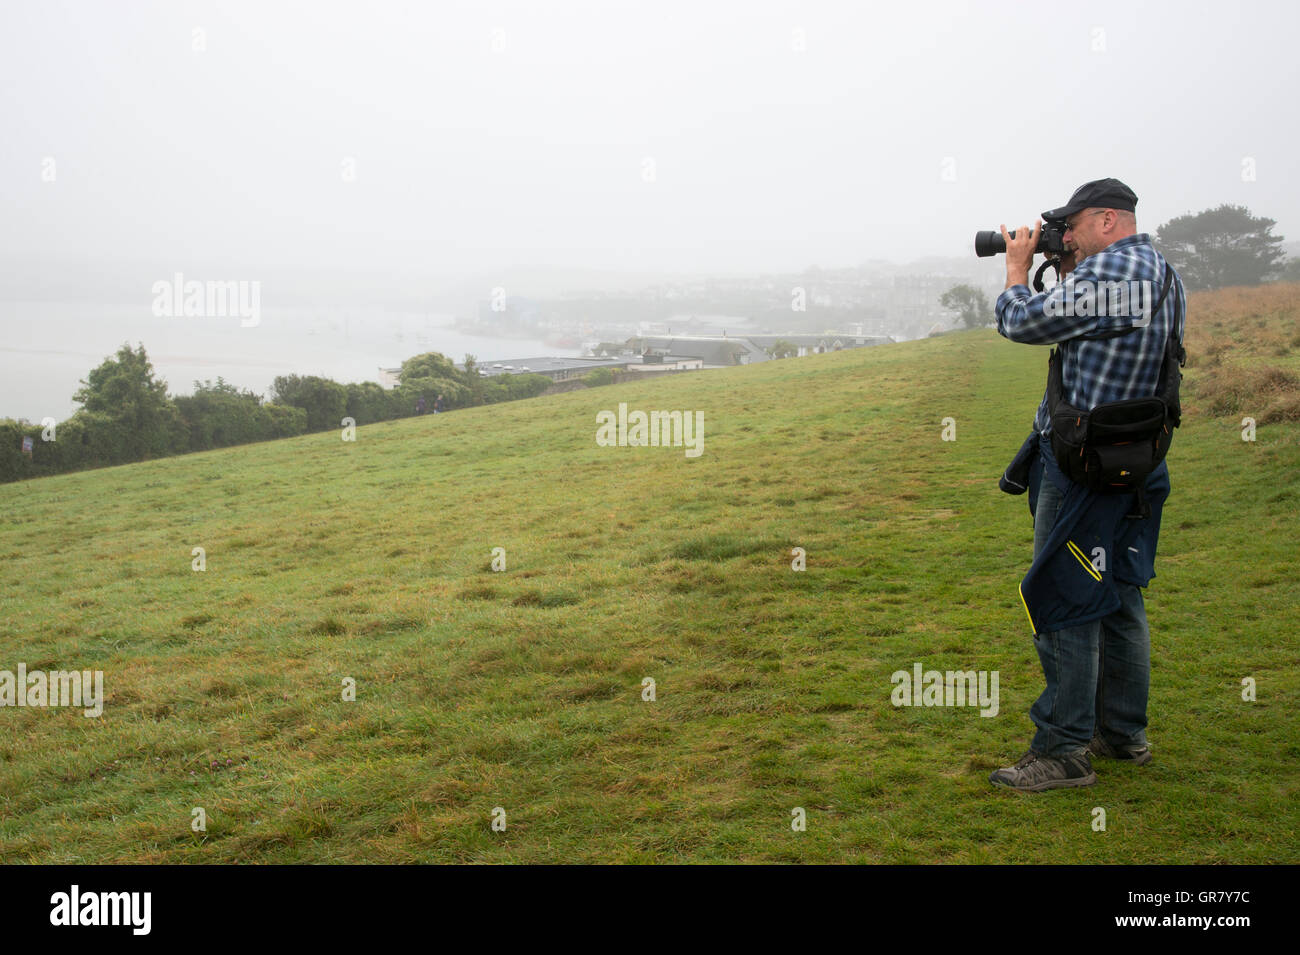 One Photographer In The Hills Above The Port Of Padstow - Stock Image